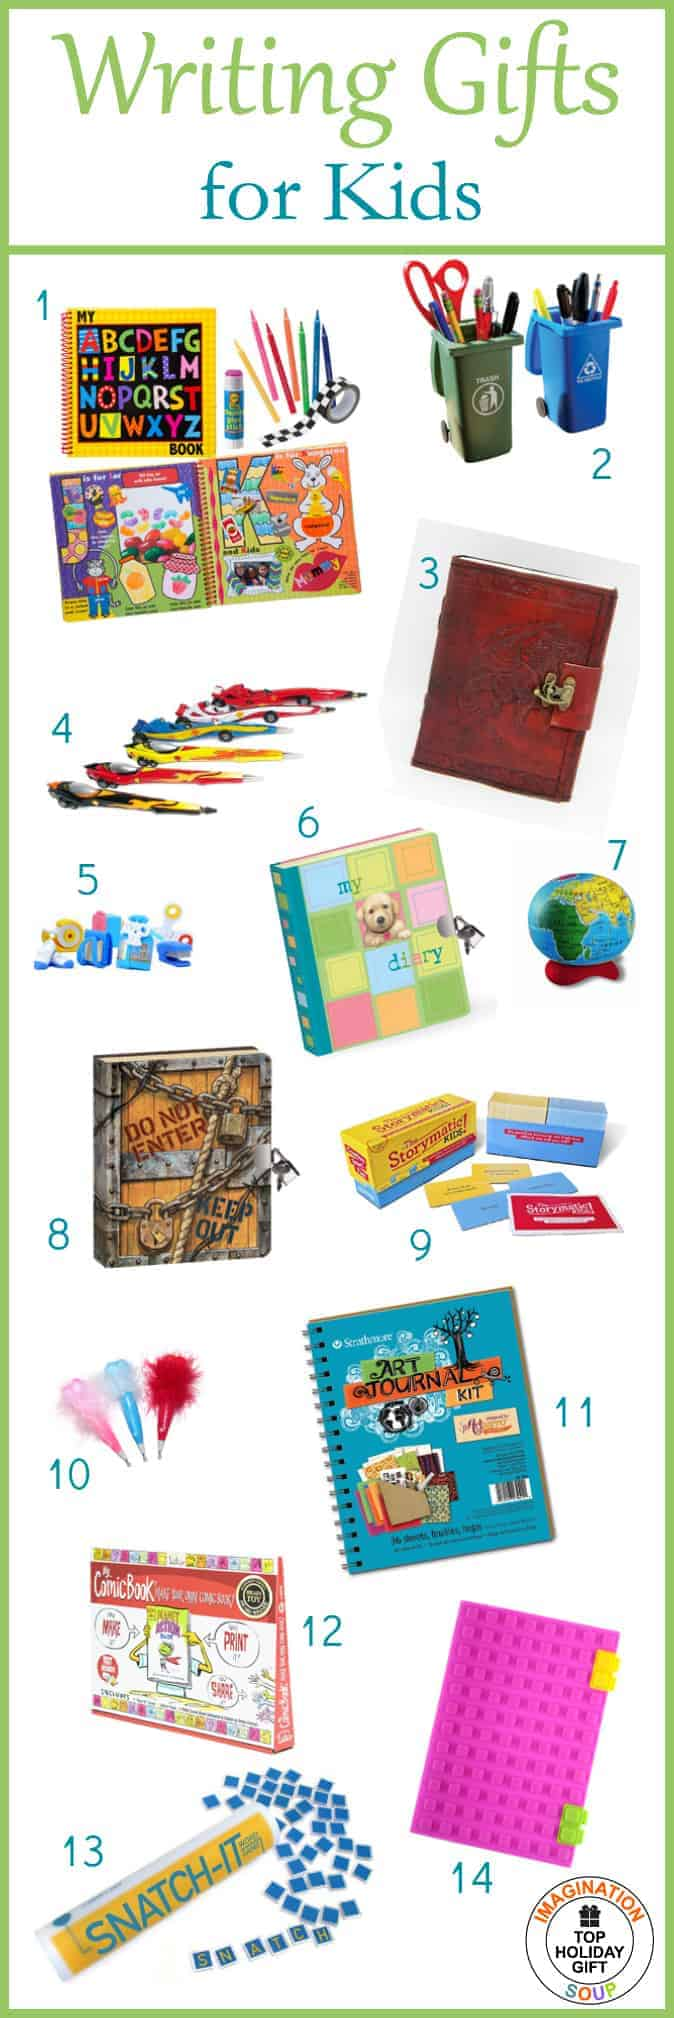 Smart Kids Writing Gifts Kids Imagination Soup Gifts Writing Gifts Kids Under 10 Ftsideaschildren gifts Gifts For Kids